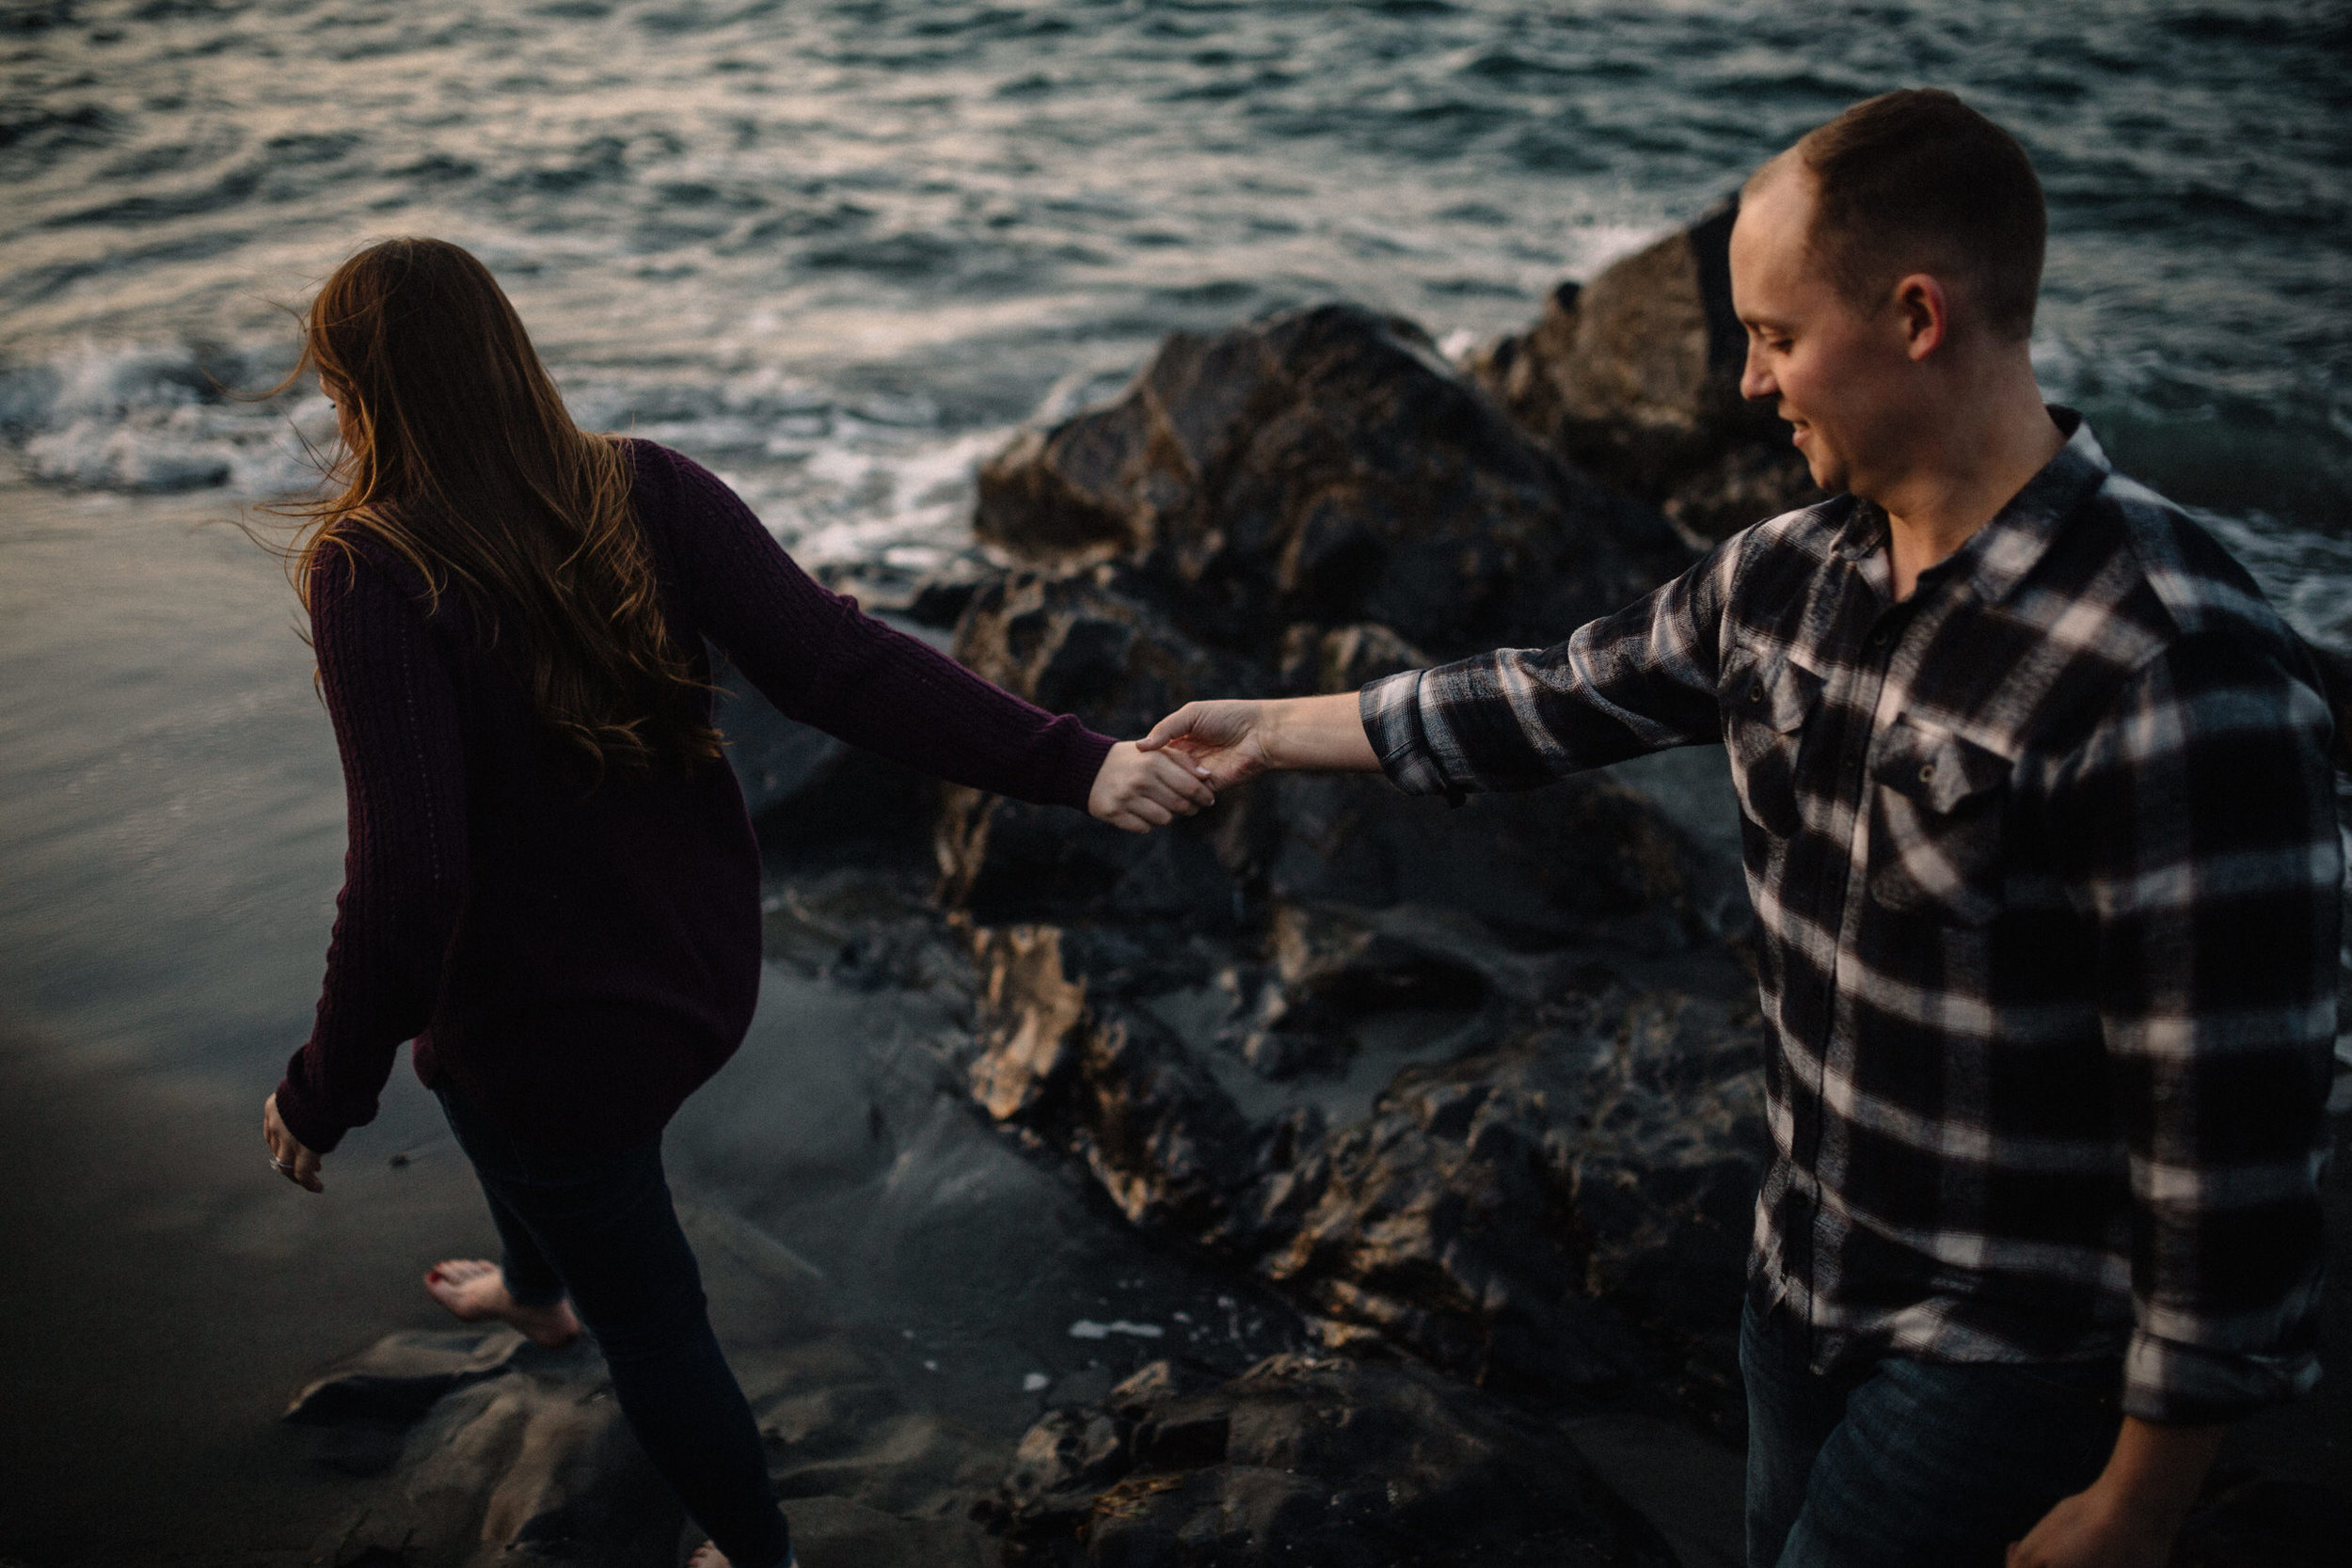 Deception Pass engagement photography Seattle washington0052.JPG